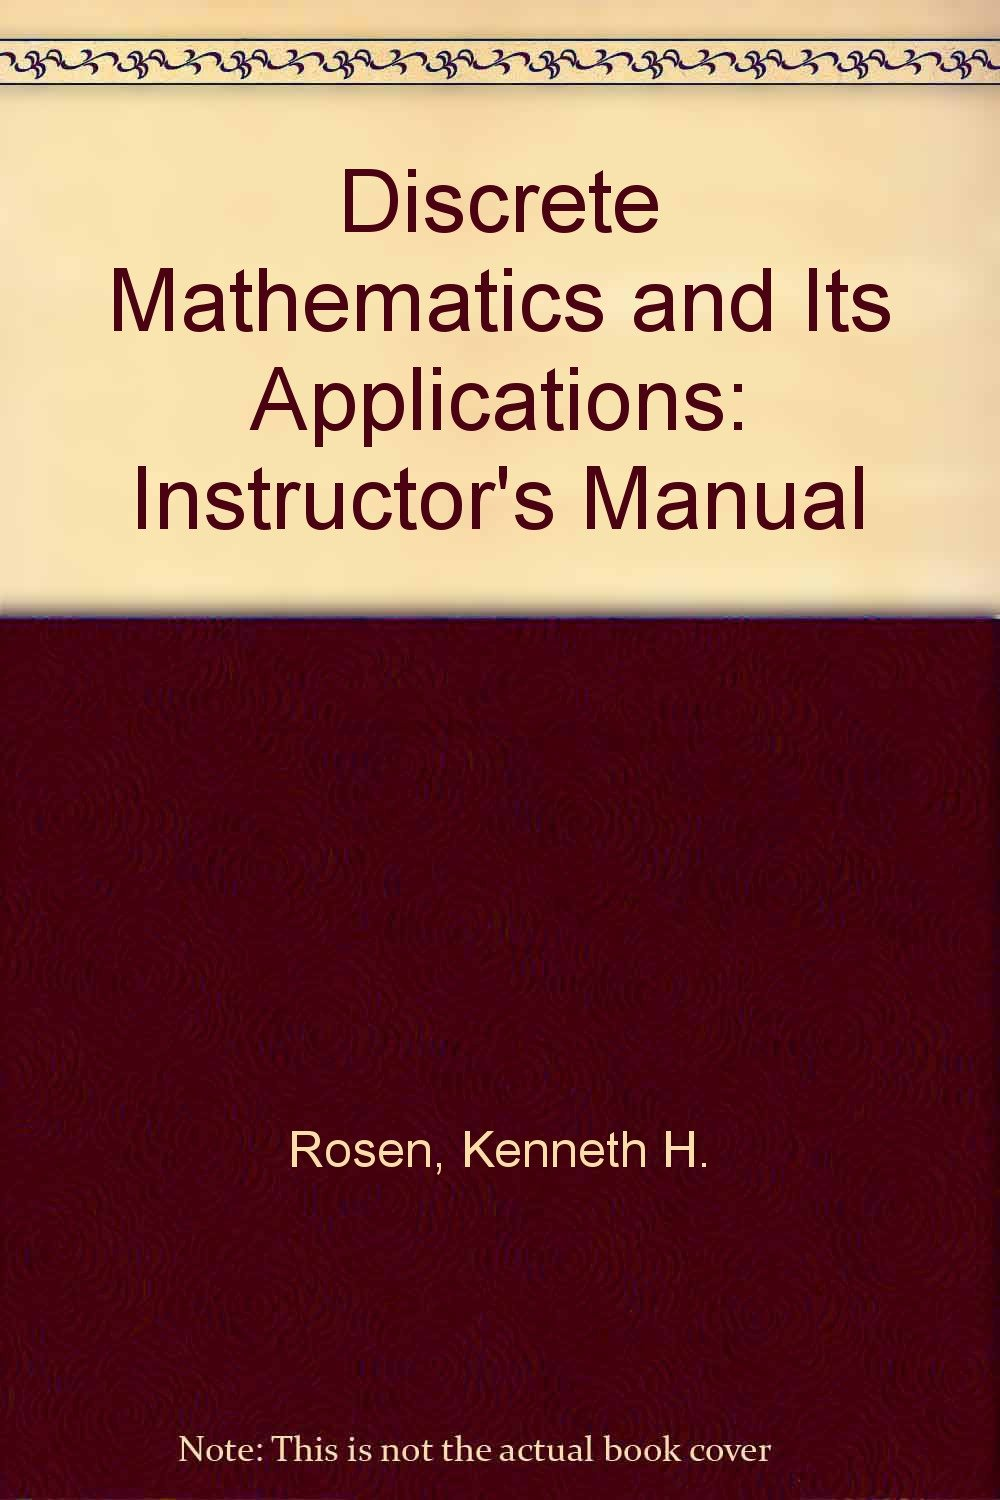 Instructor's resource guide for discrete mathematics and its applications:  Kenneth H Rosen: 9780070539679: Amazon.com: Books